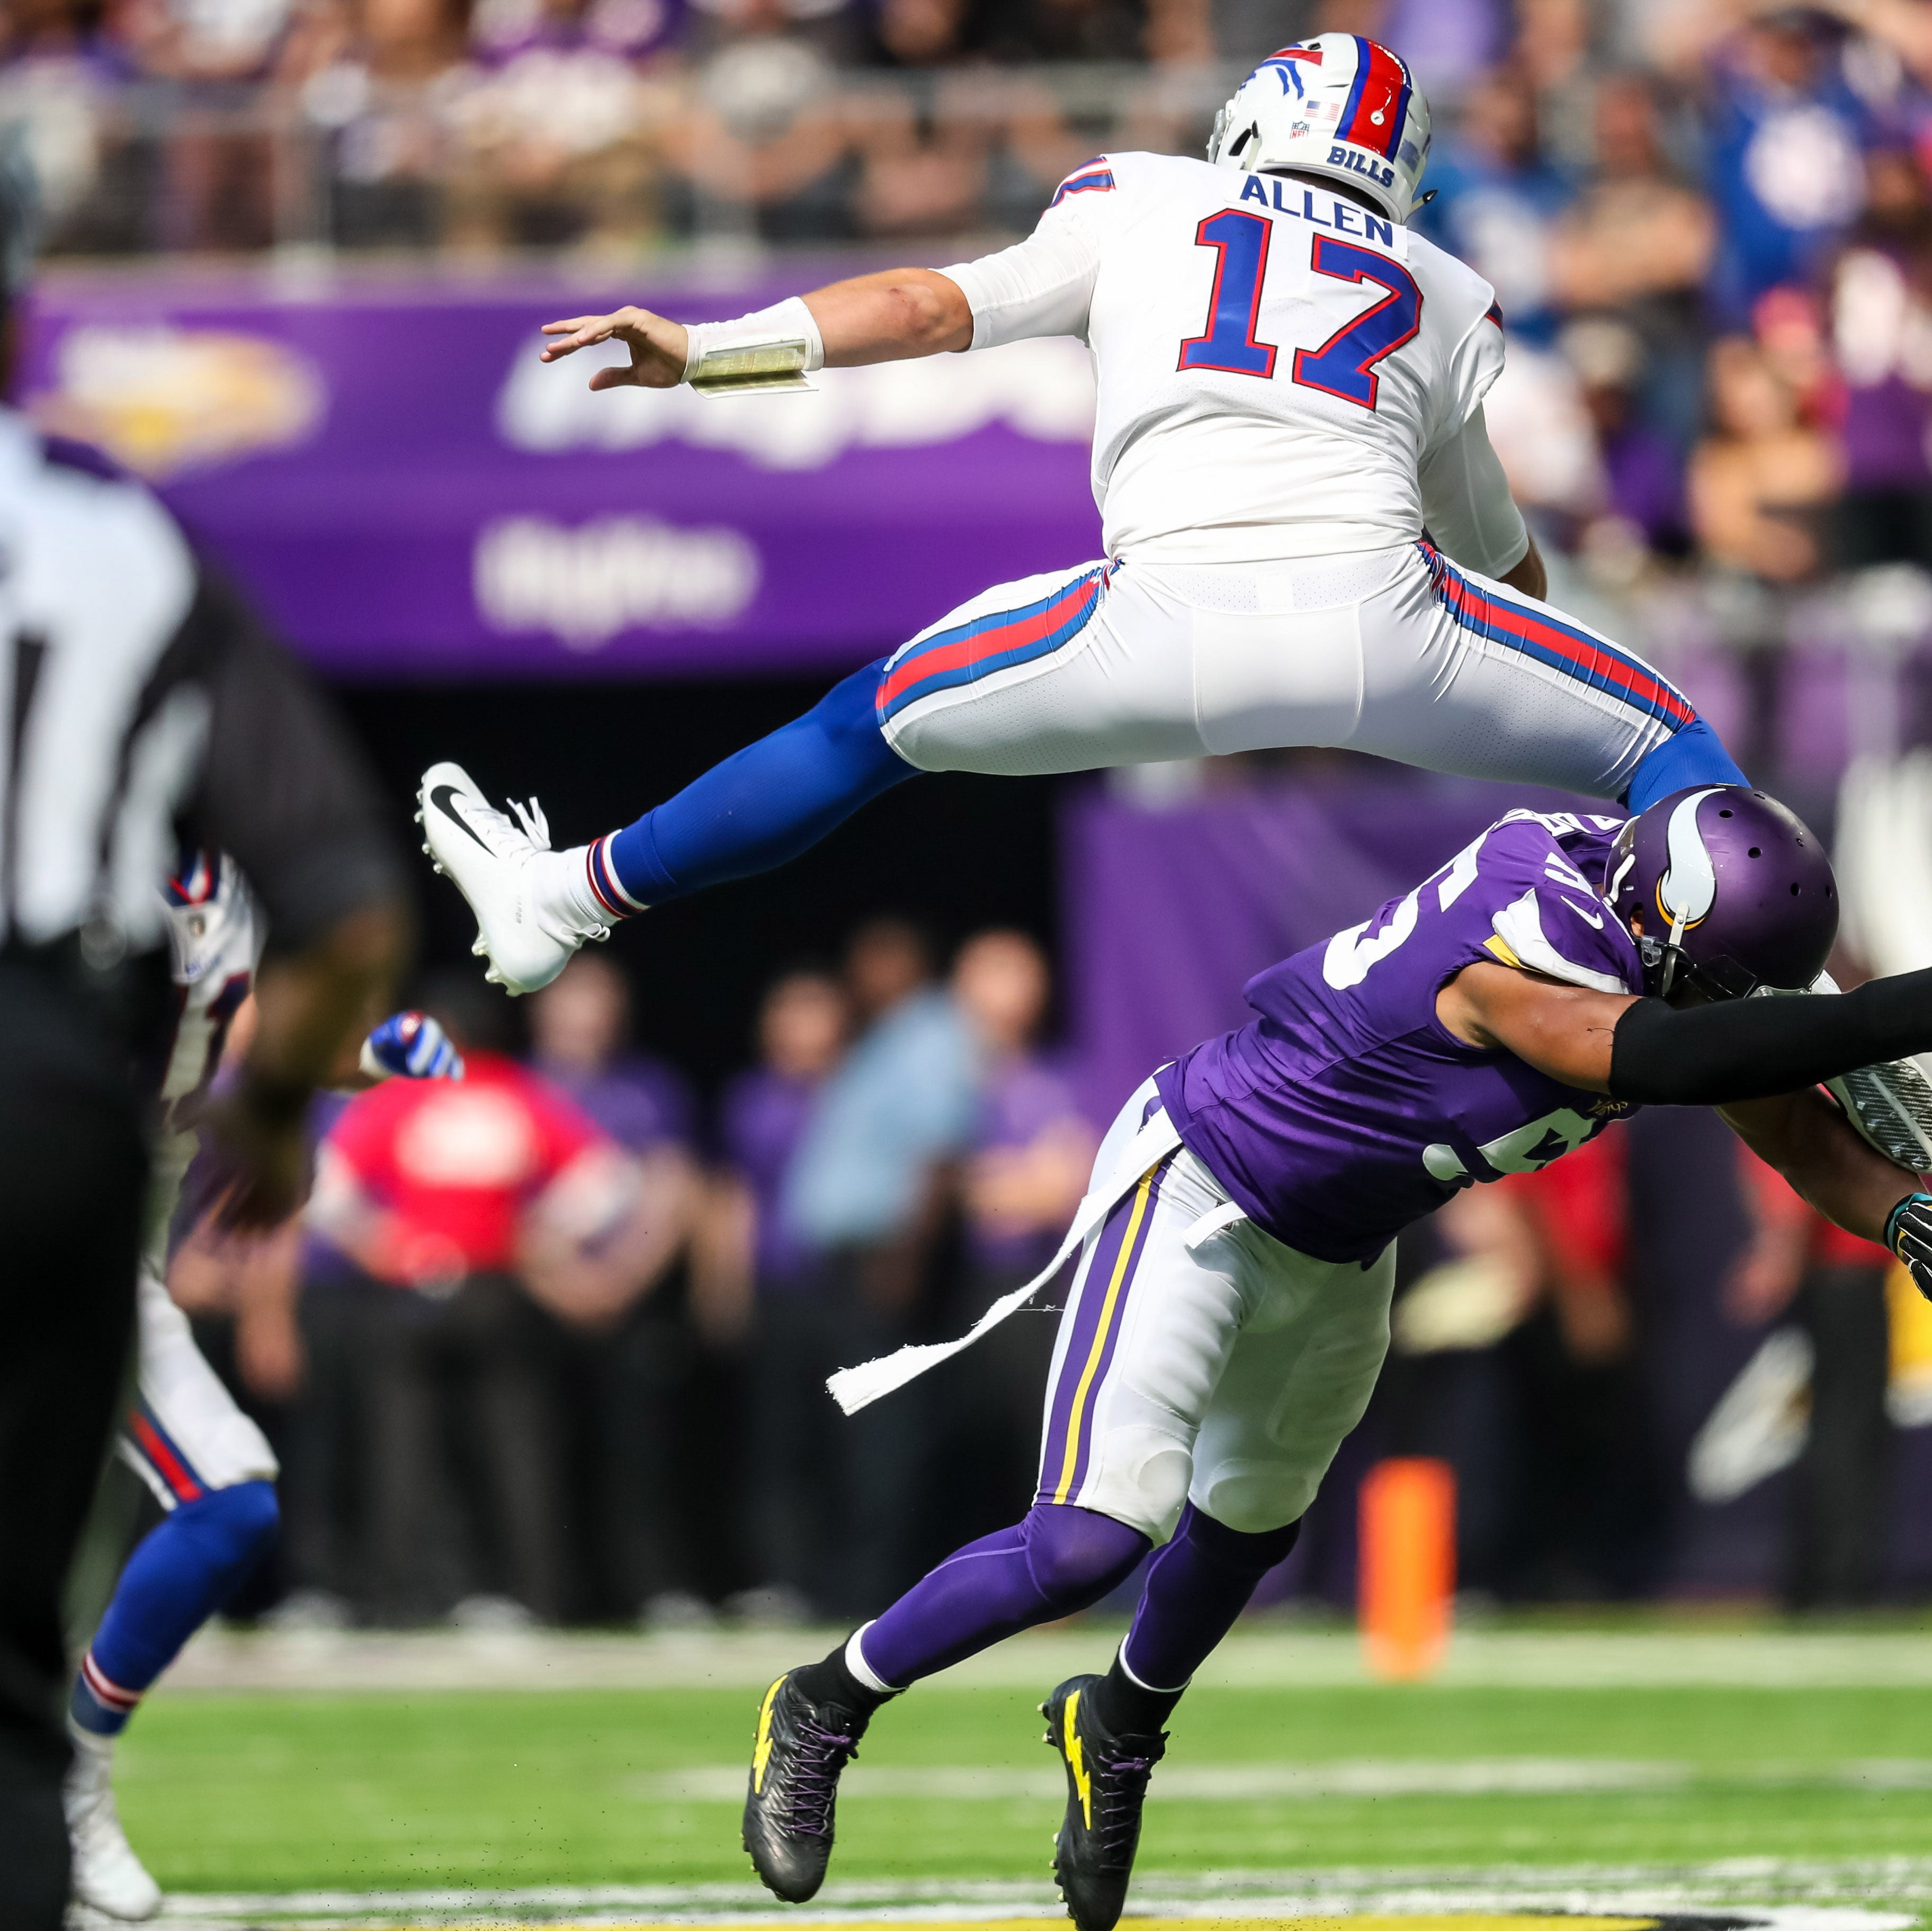 Final score and recap: Buffalo Bills 27, Minnesota Vikings 6